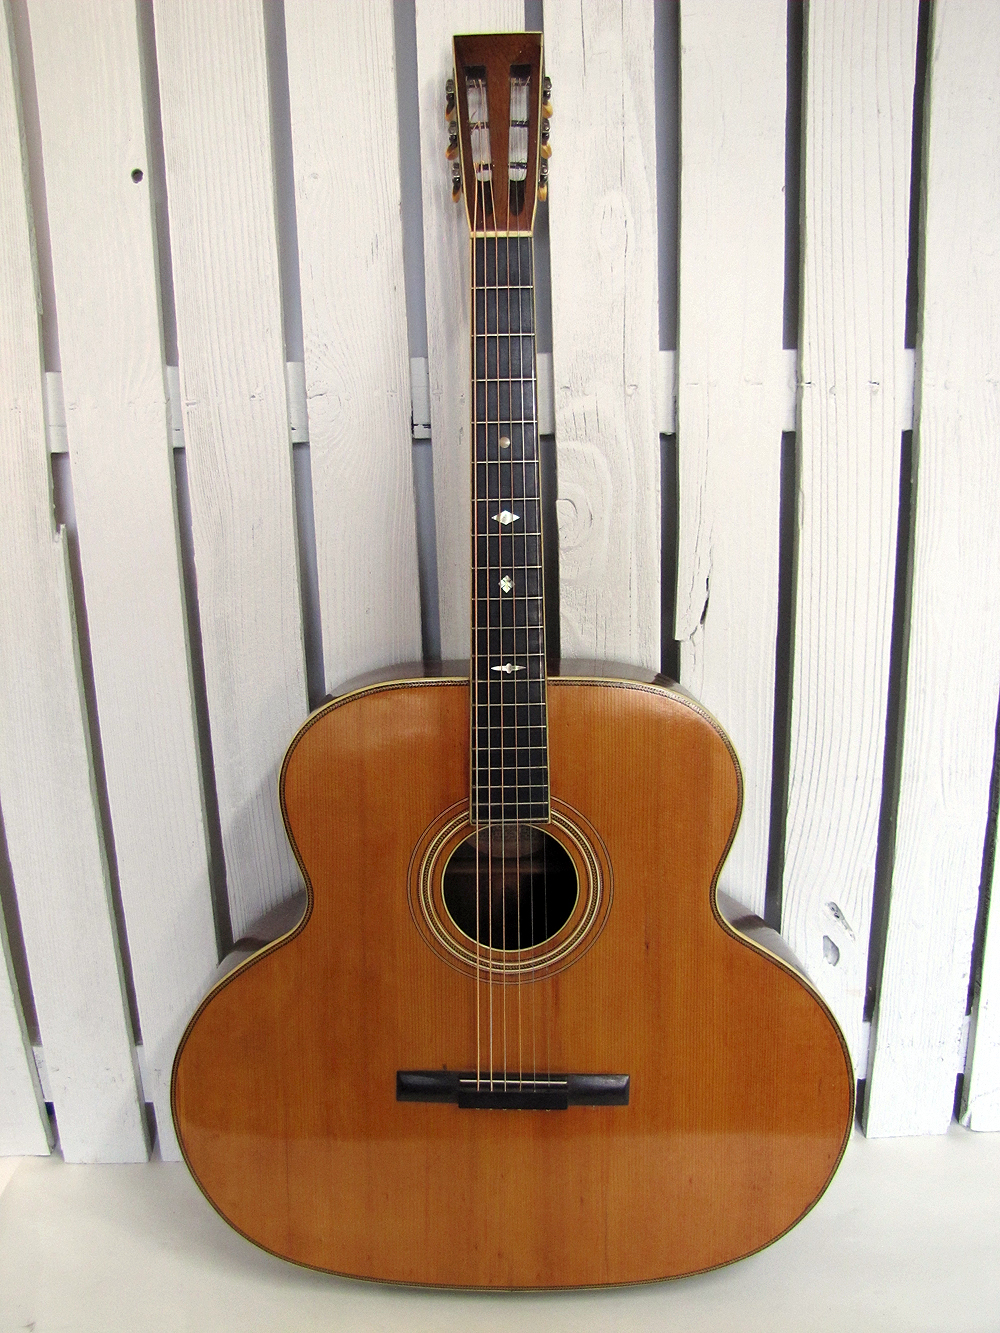 Harp Guitar - Page 3 309319.02